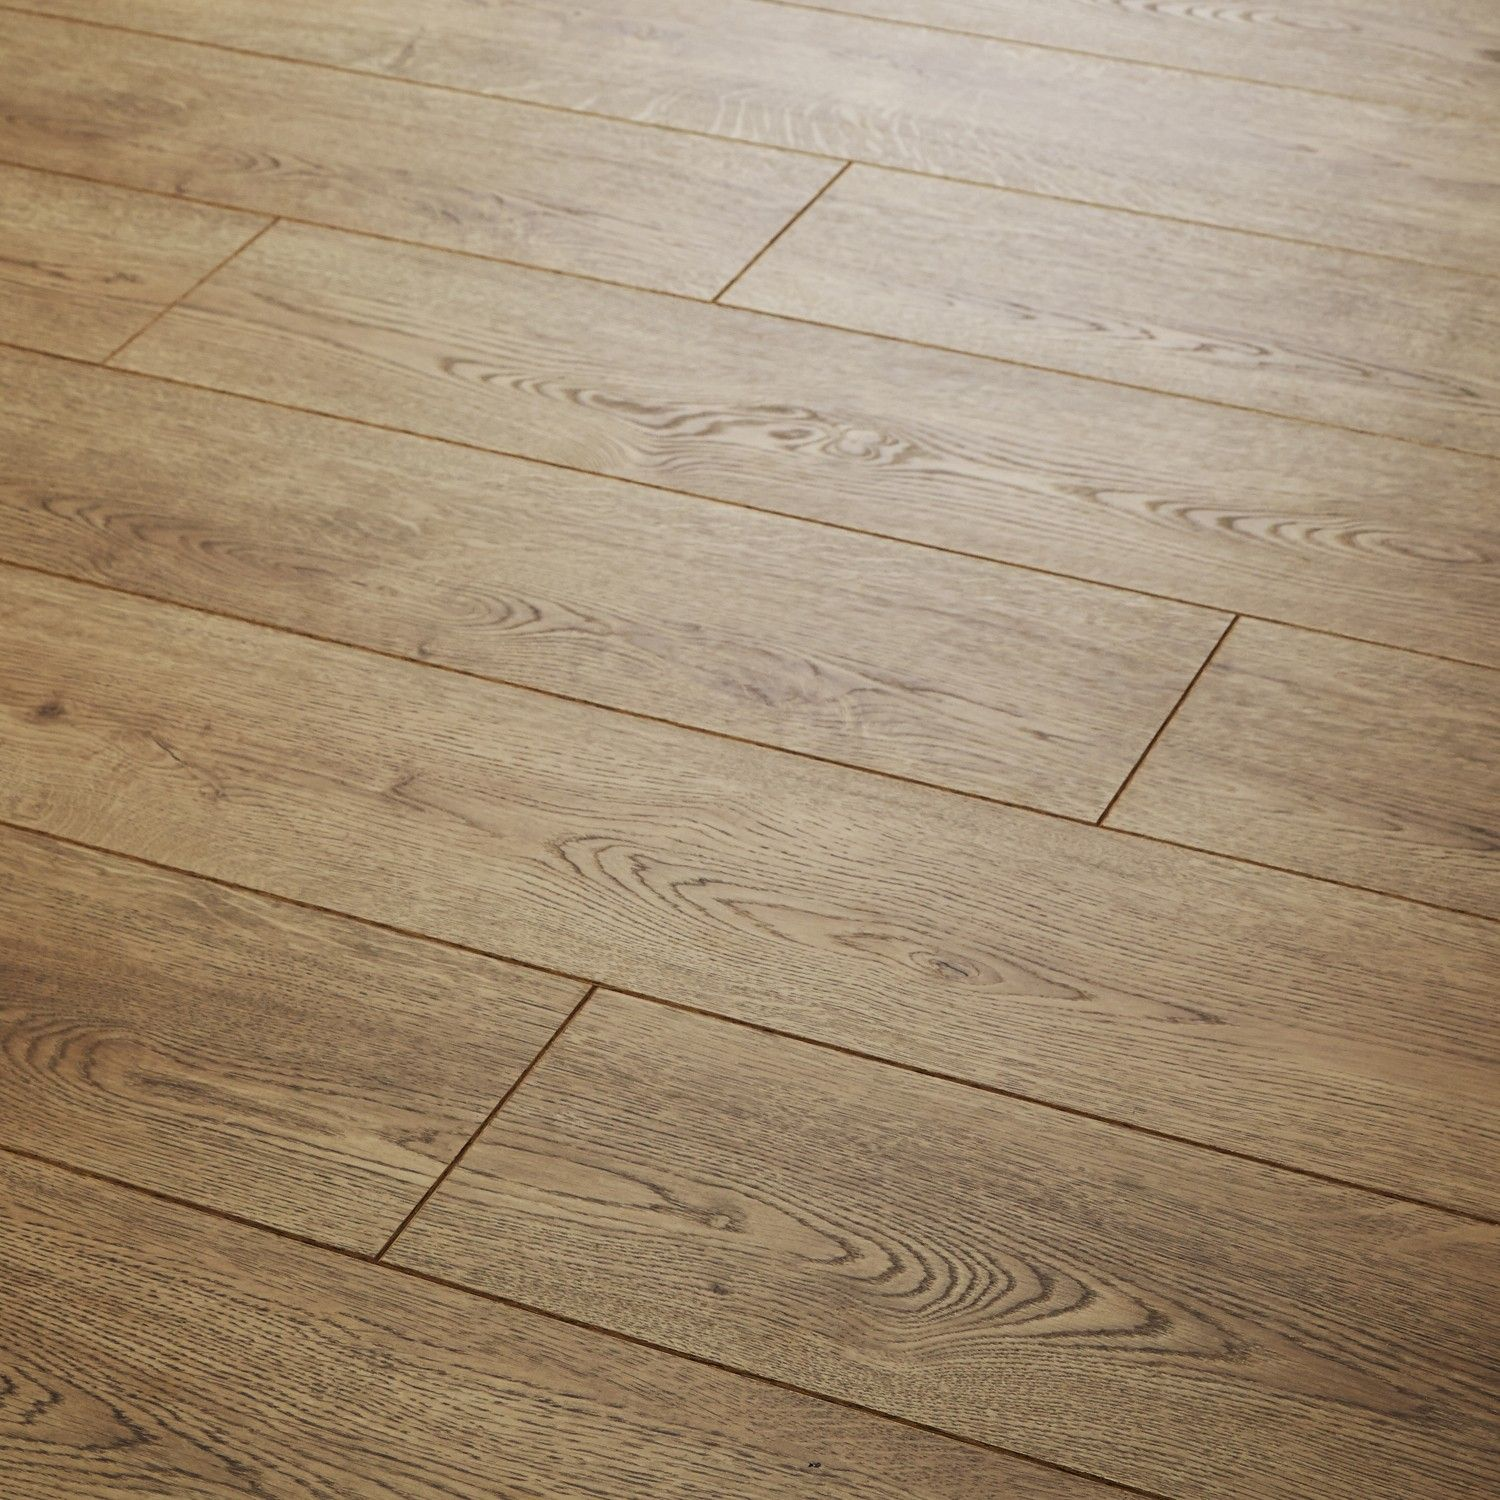 Quattro 8 abbey oak laminate flooring house ideas for Rubber laminate flooring